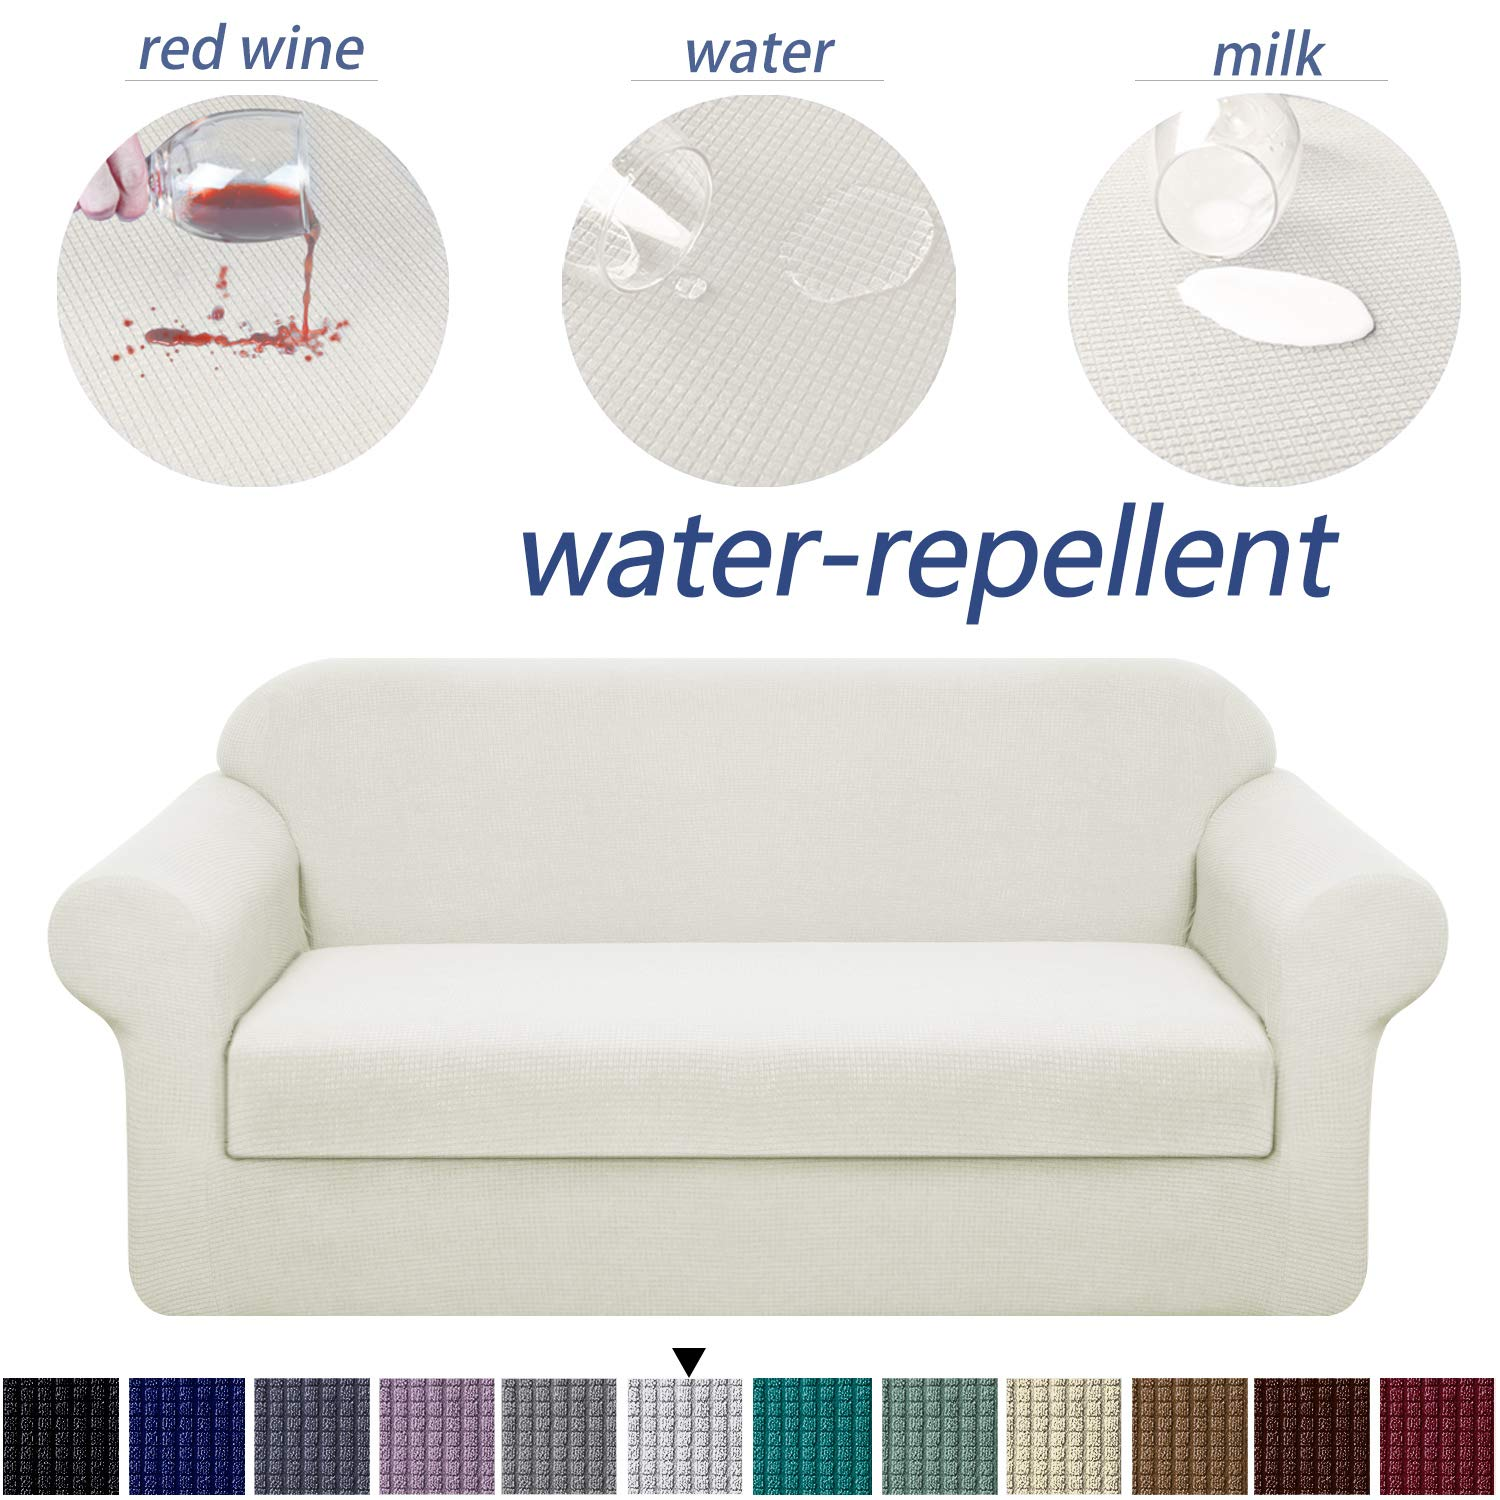 Granbest Stretch Sofa Slipcovers 3 Cushion Couch Covers Water-Repellent Pet Furniture Covers Dog Couch Protectors (Creamy White, Loveseat-2 Pieces)